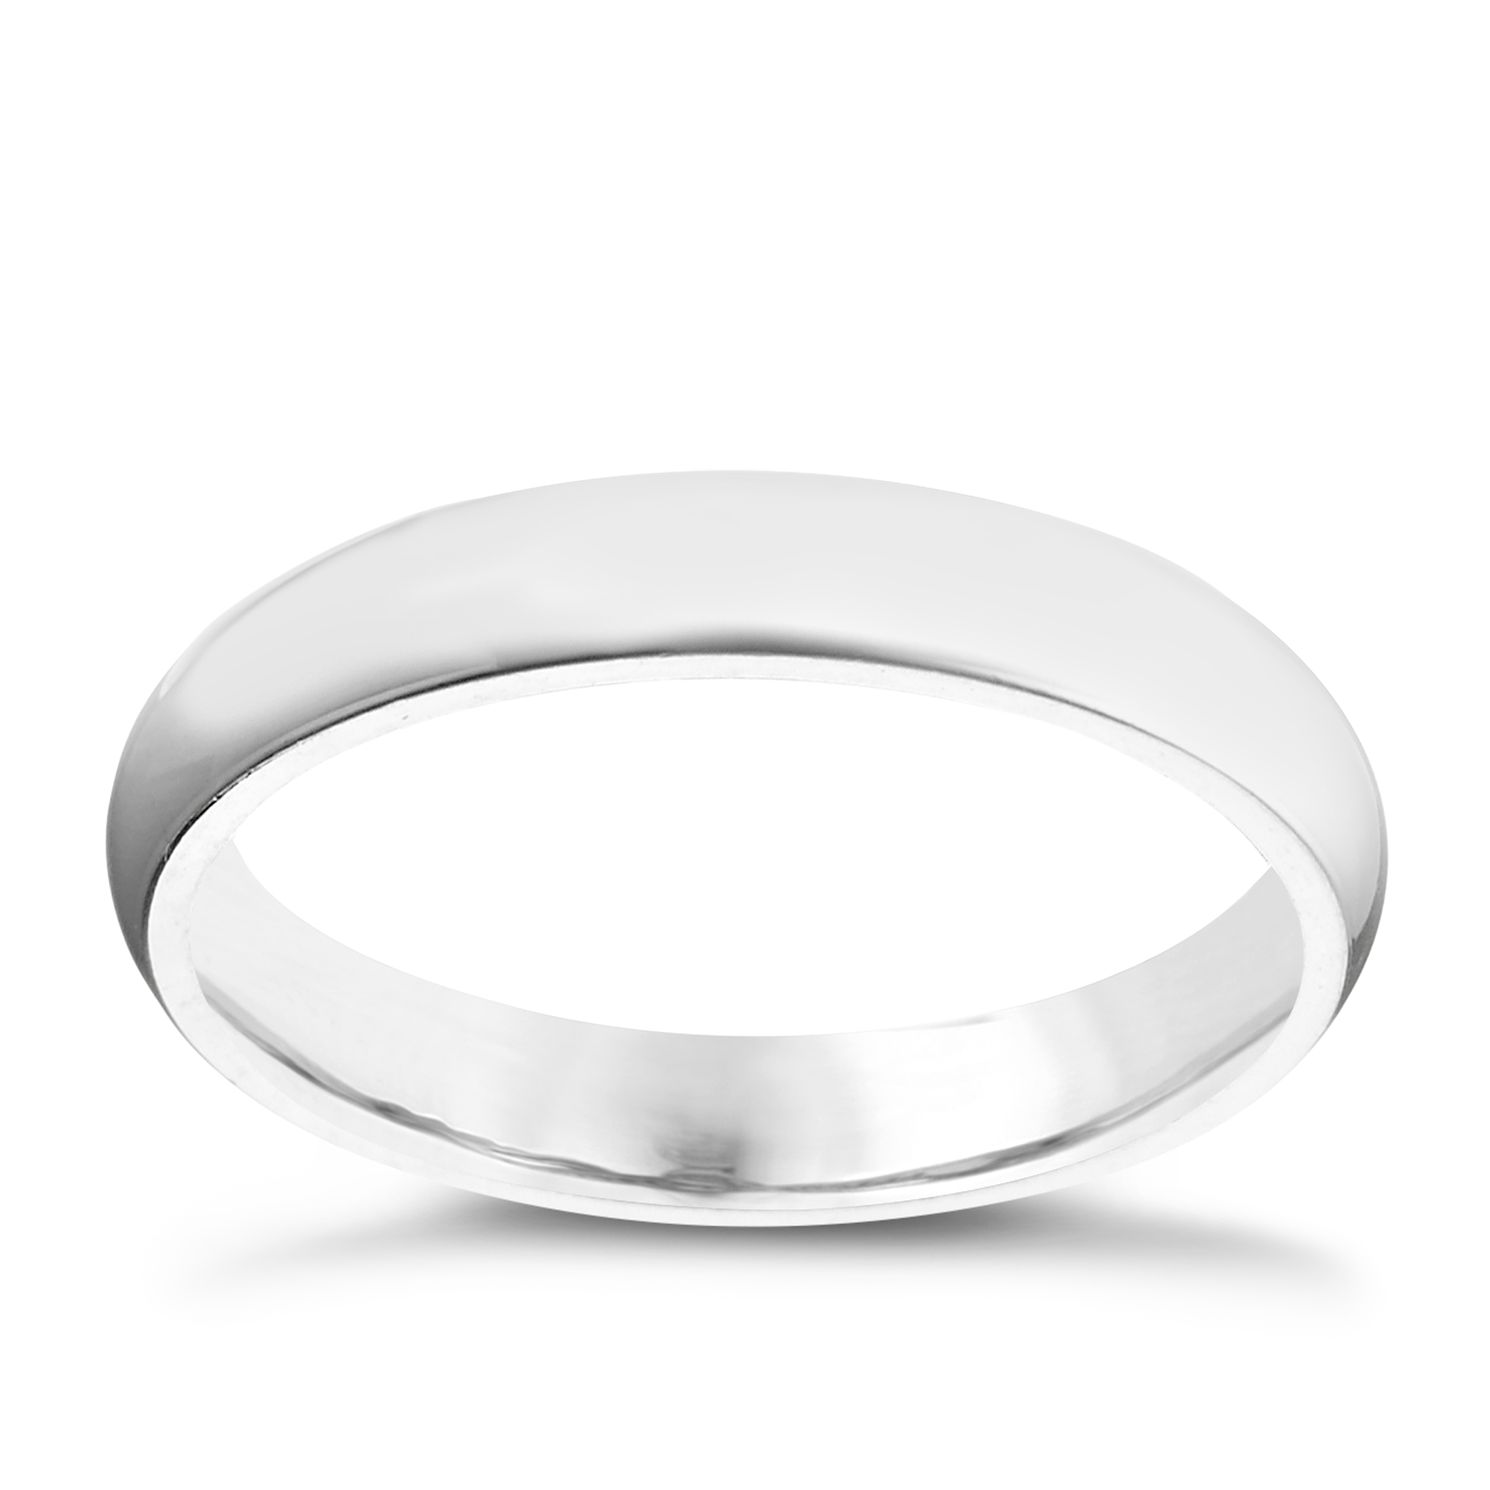 Palladium 950 3mm Super Heavy Court Ring - Product number 5900700